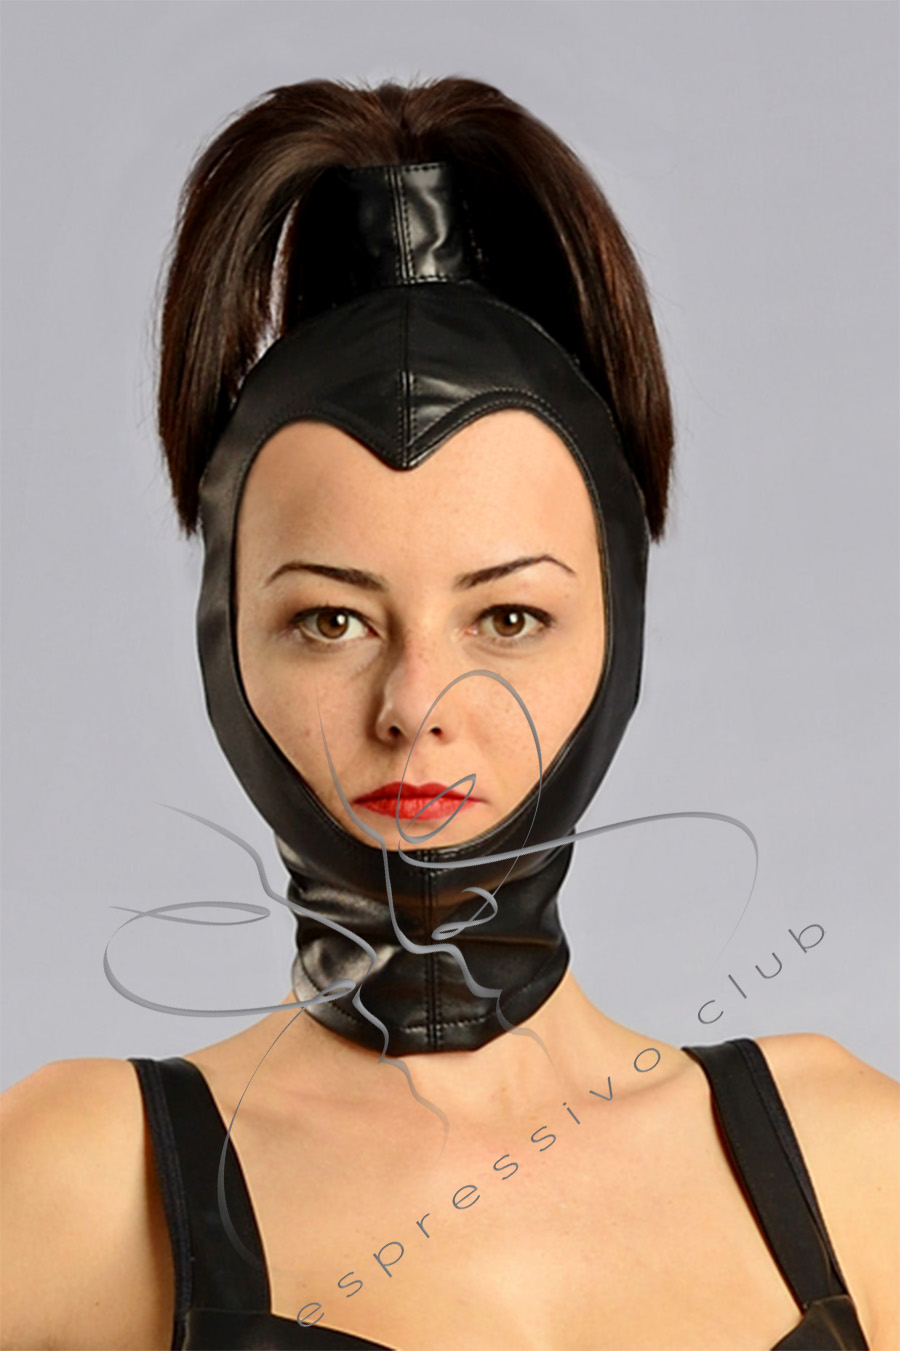 Congratulate, seems leather bondage face head mask join. was